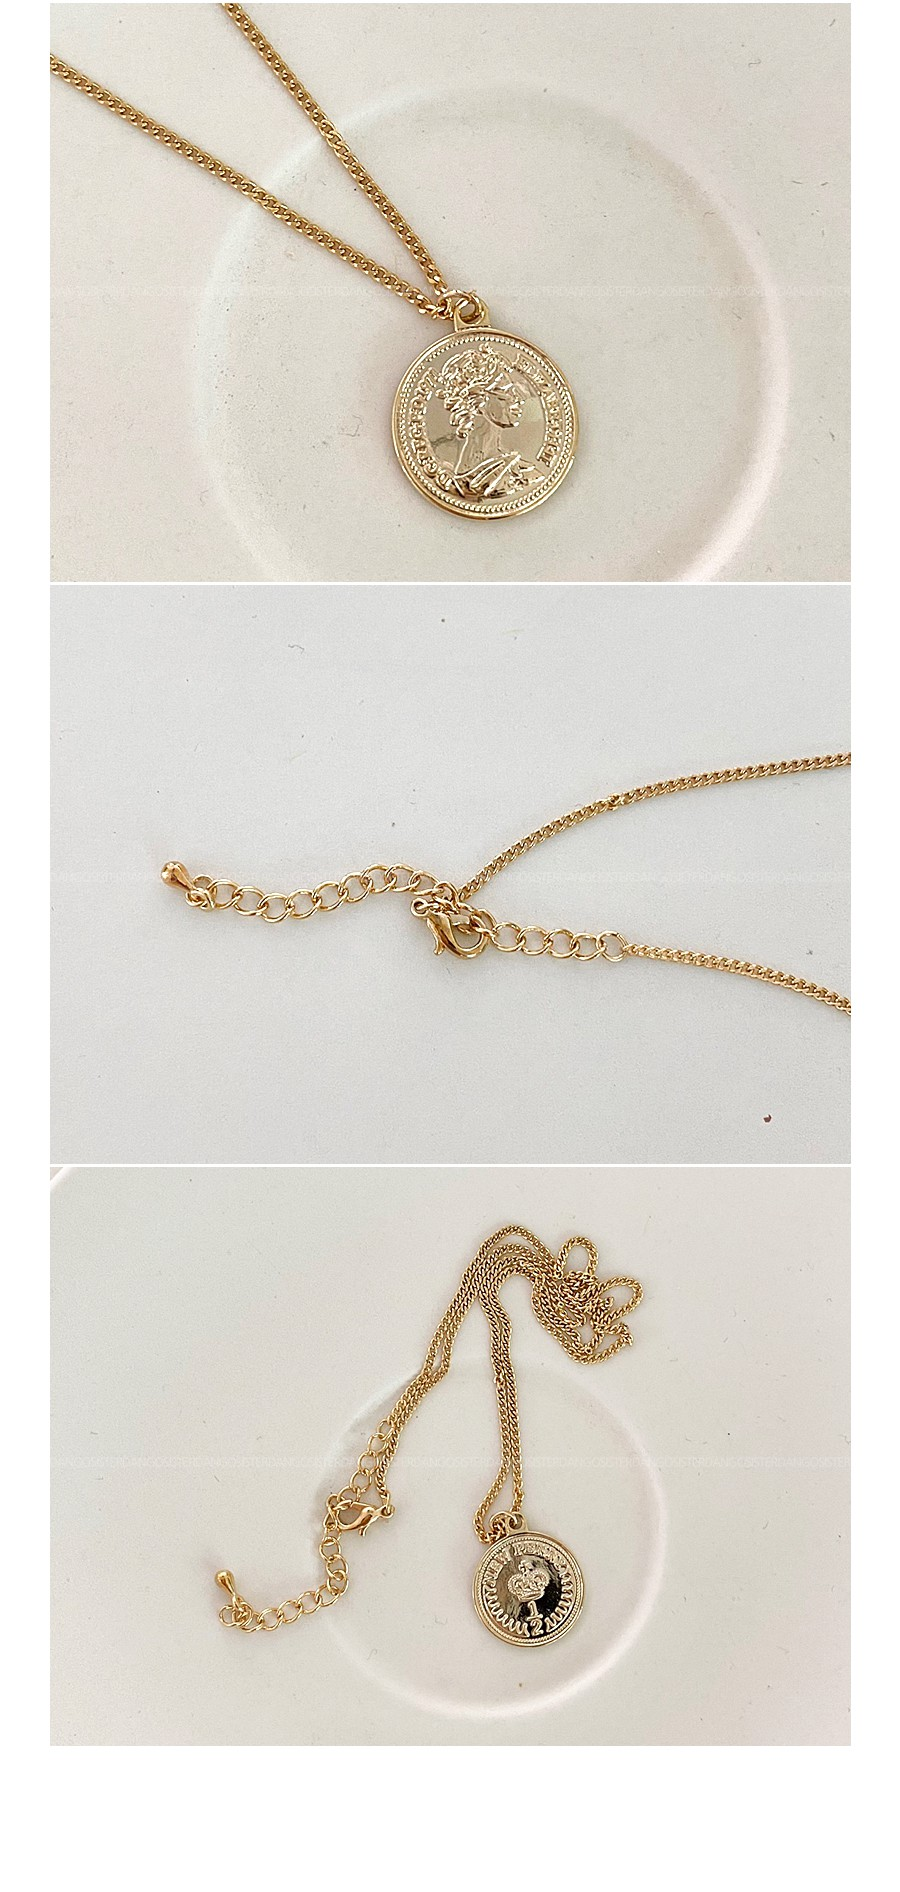 coining gold necklace